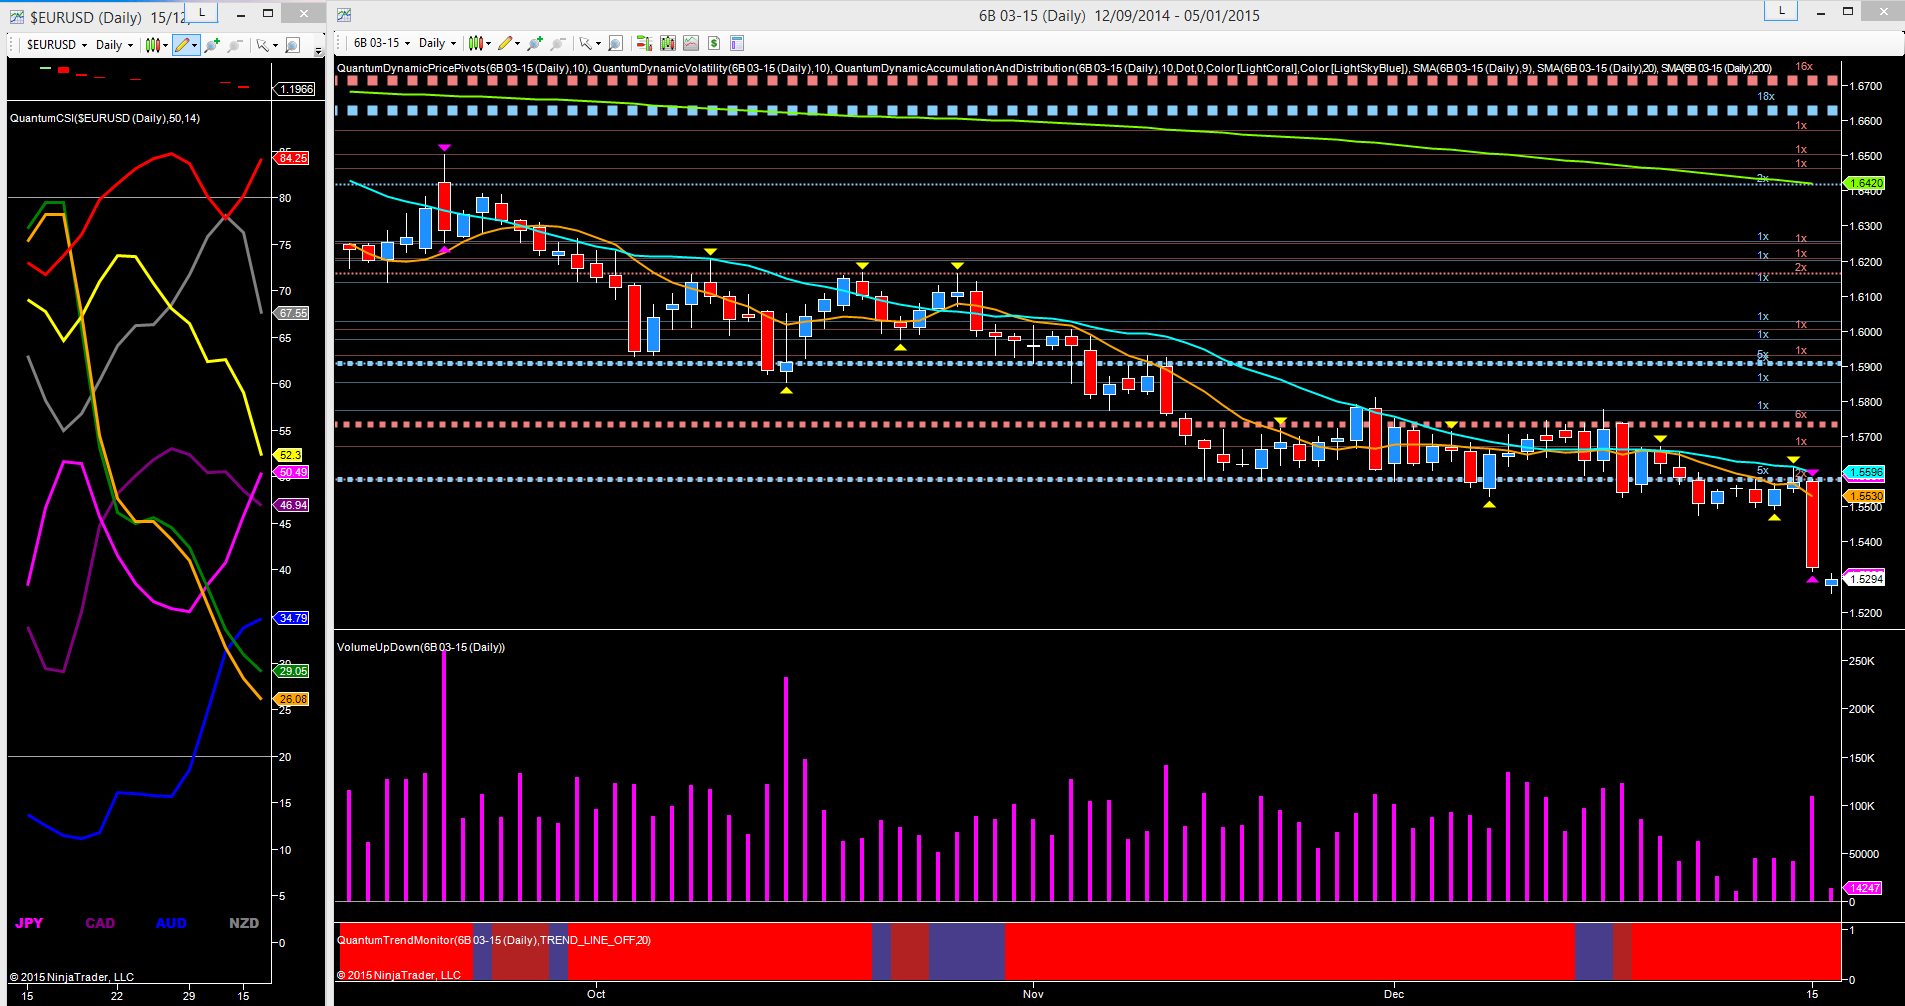 GBP_USD_daily_with_csi